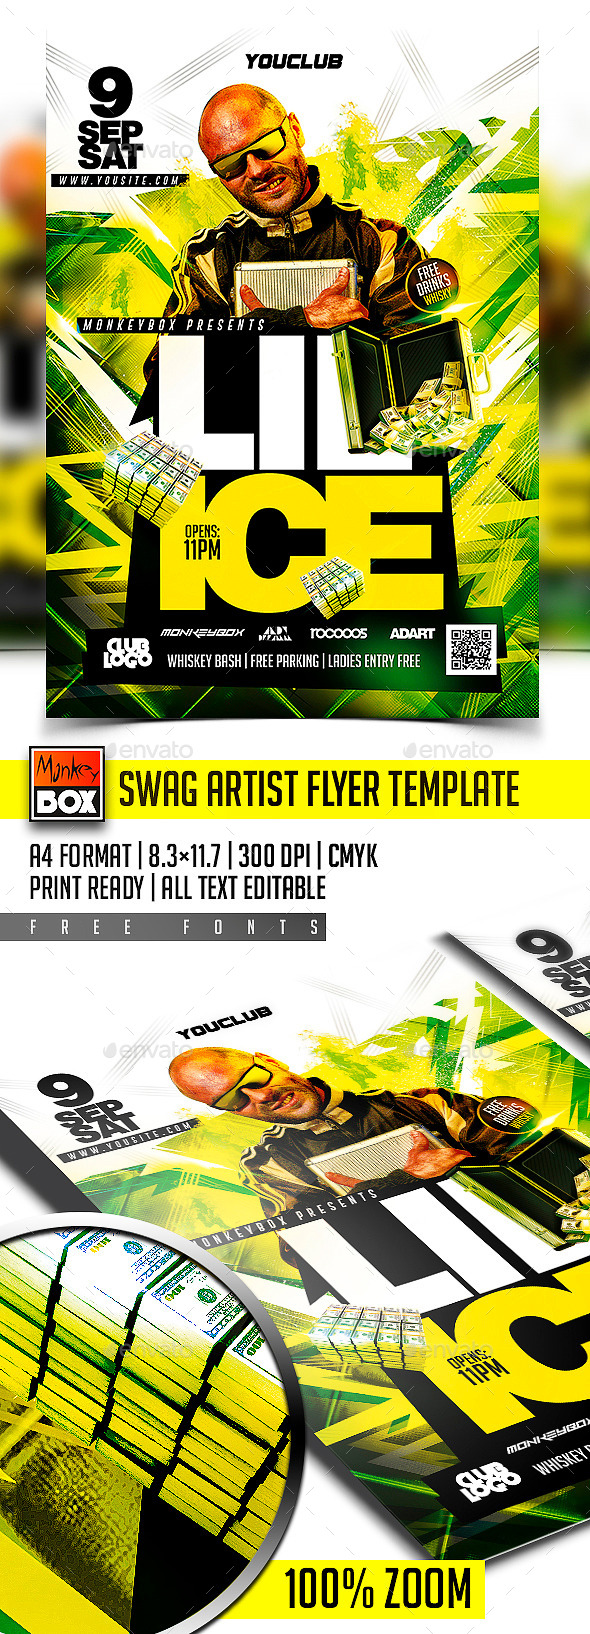 Swag Artist Flyer Template